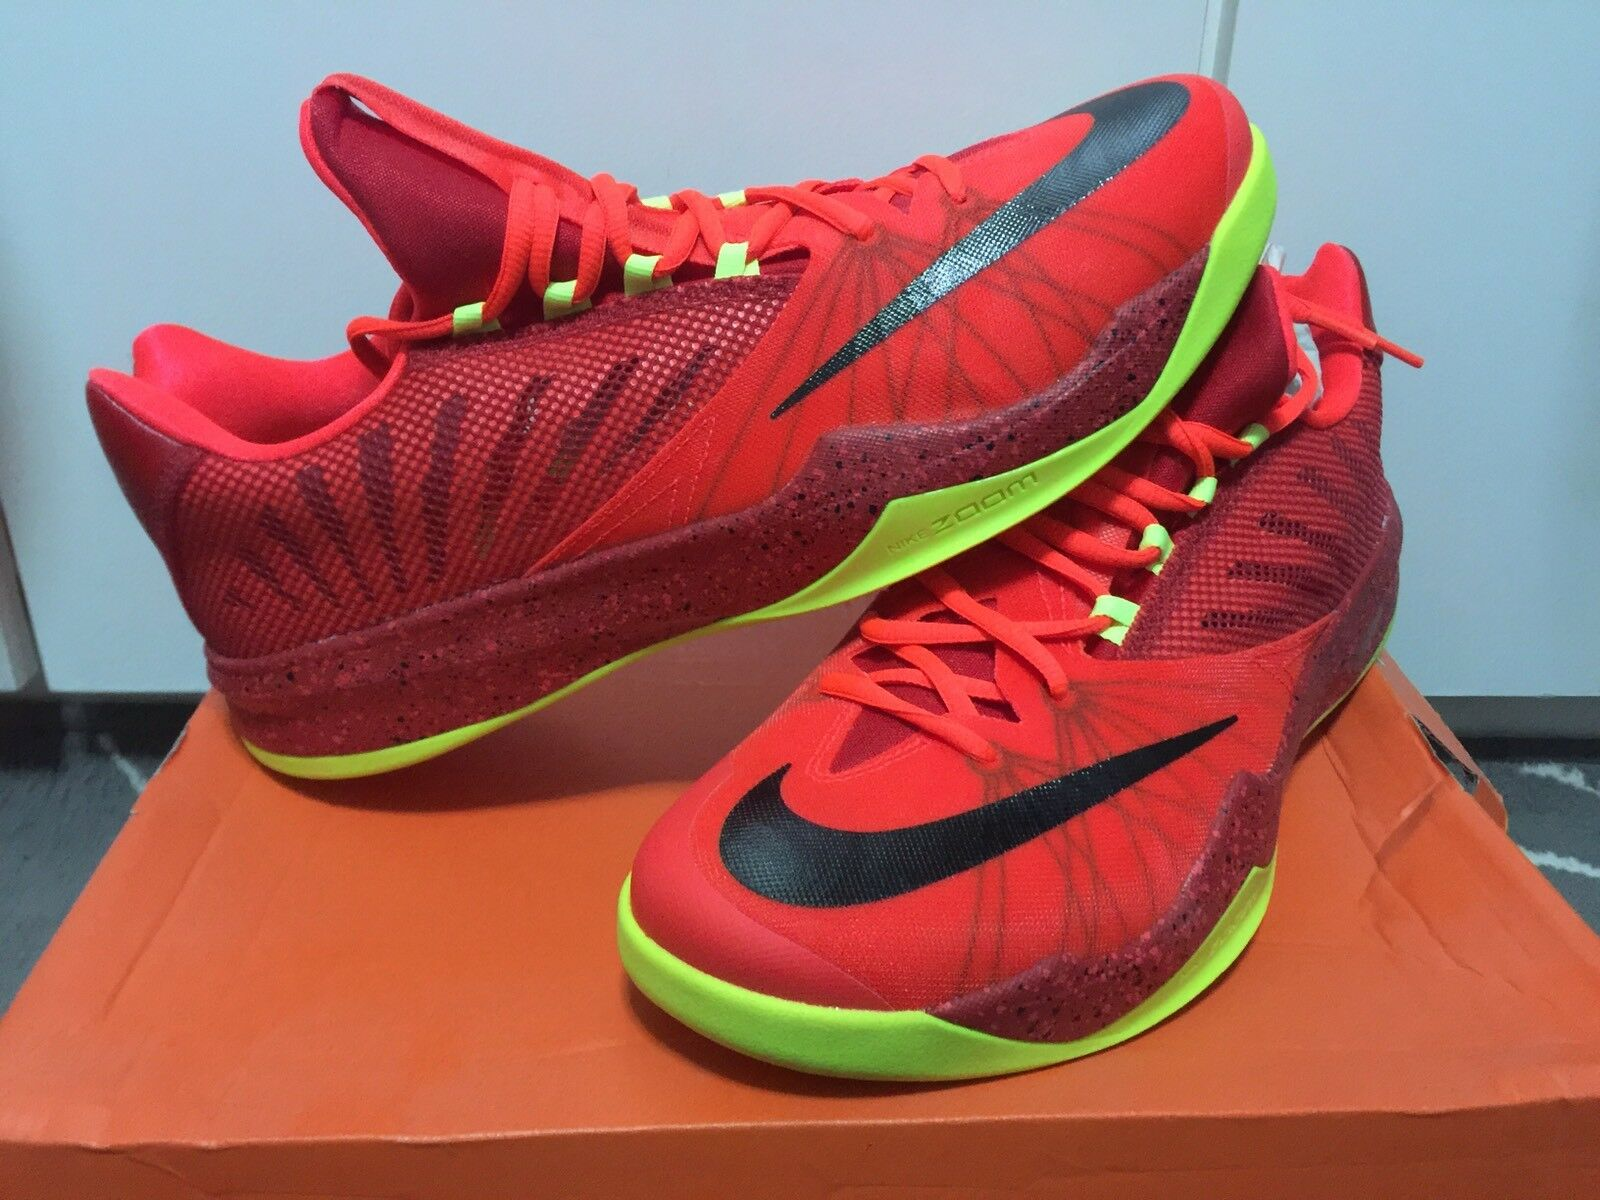 NIKE ZOOM RUN THE ONE PE JAMES HARDEN SIZE 11.5 10.5 718018 606